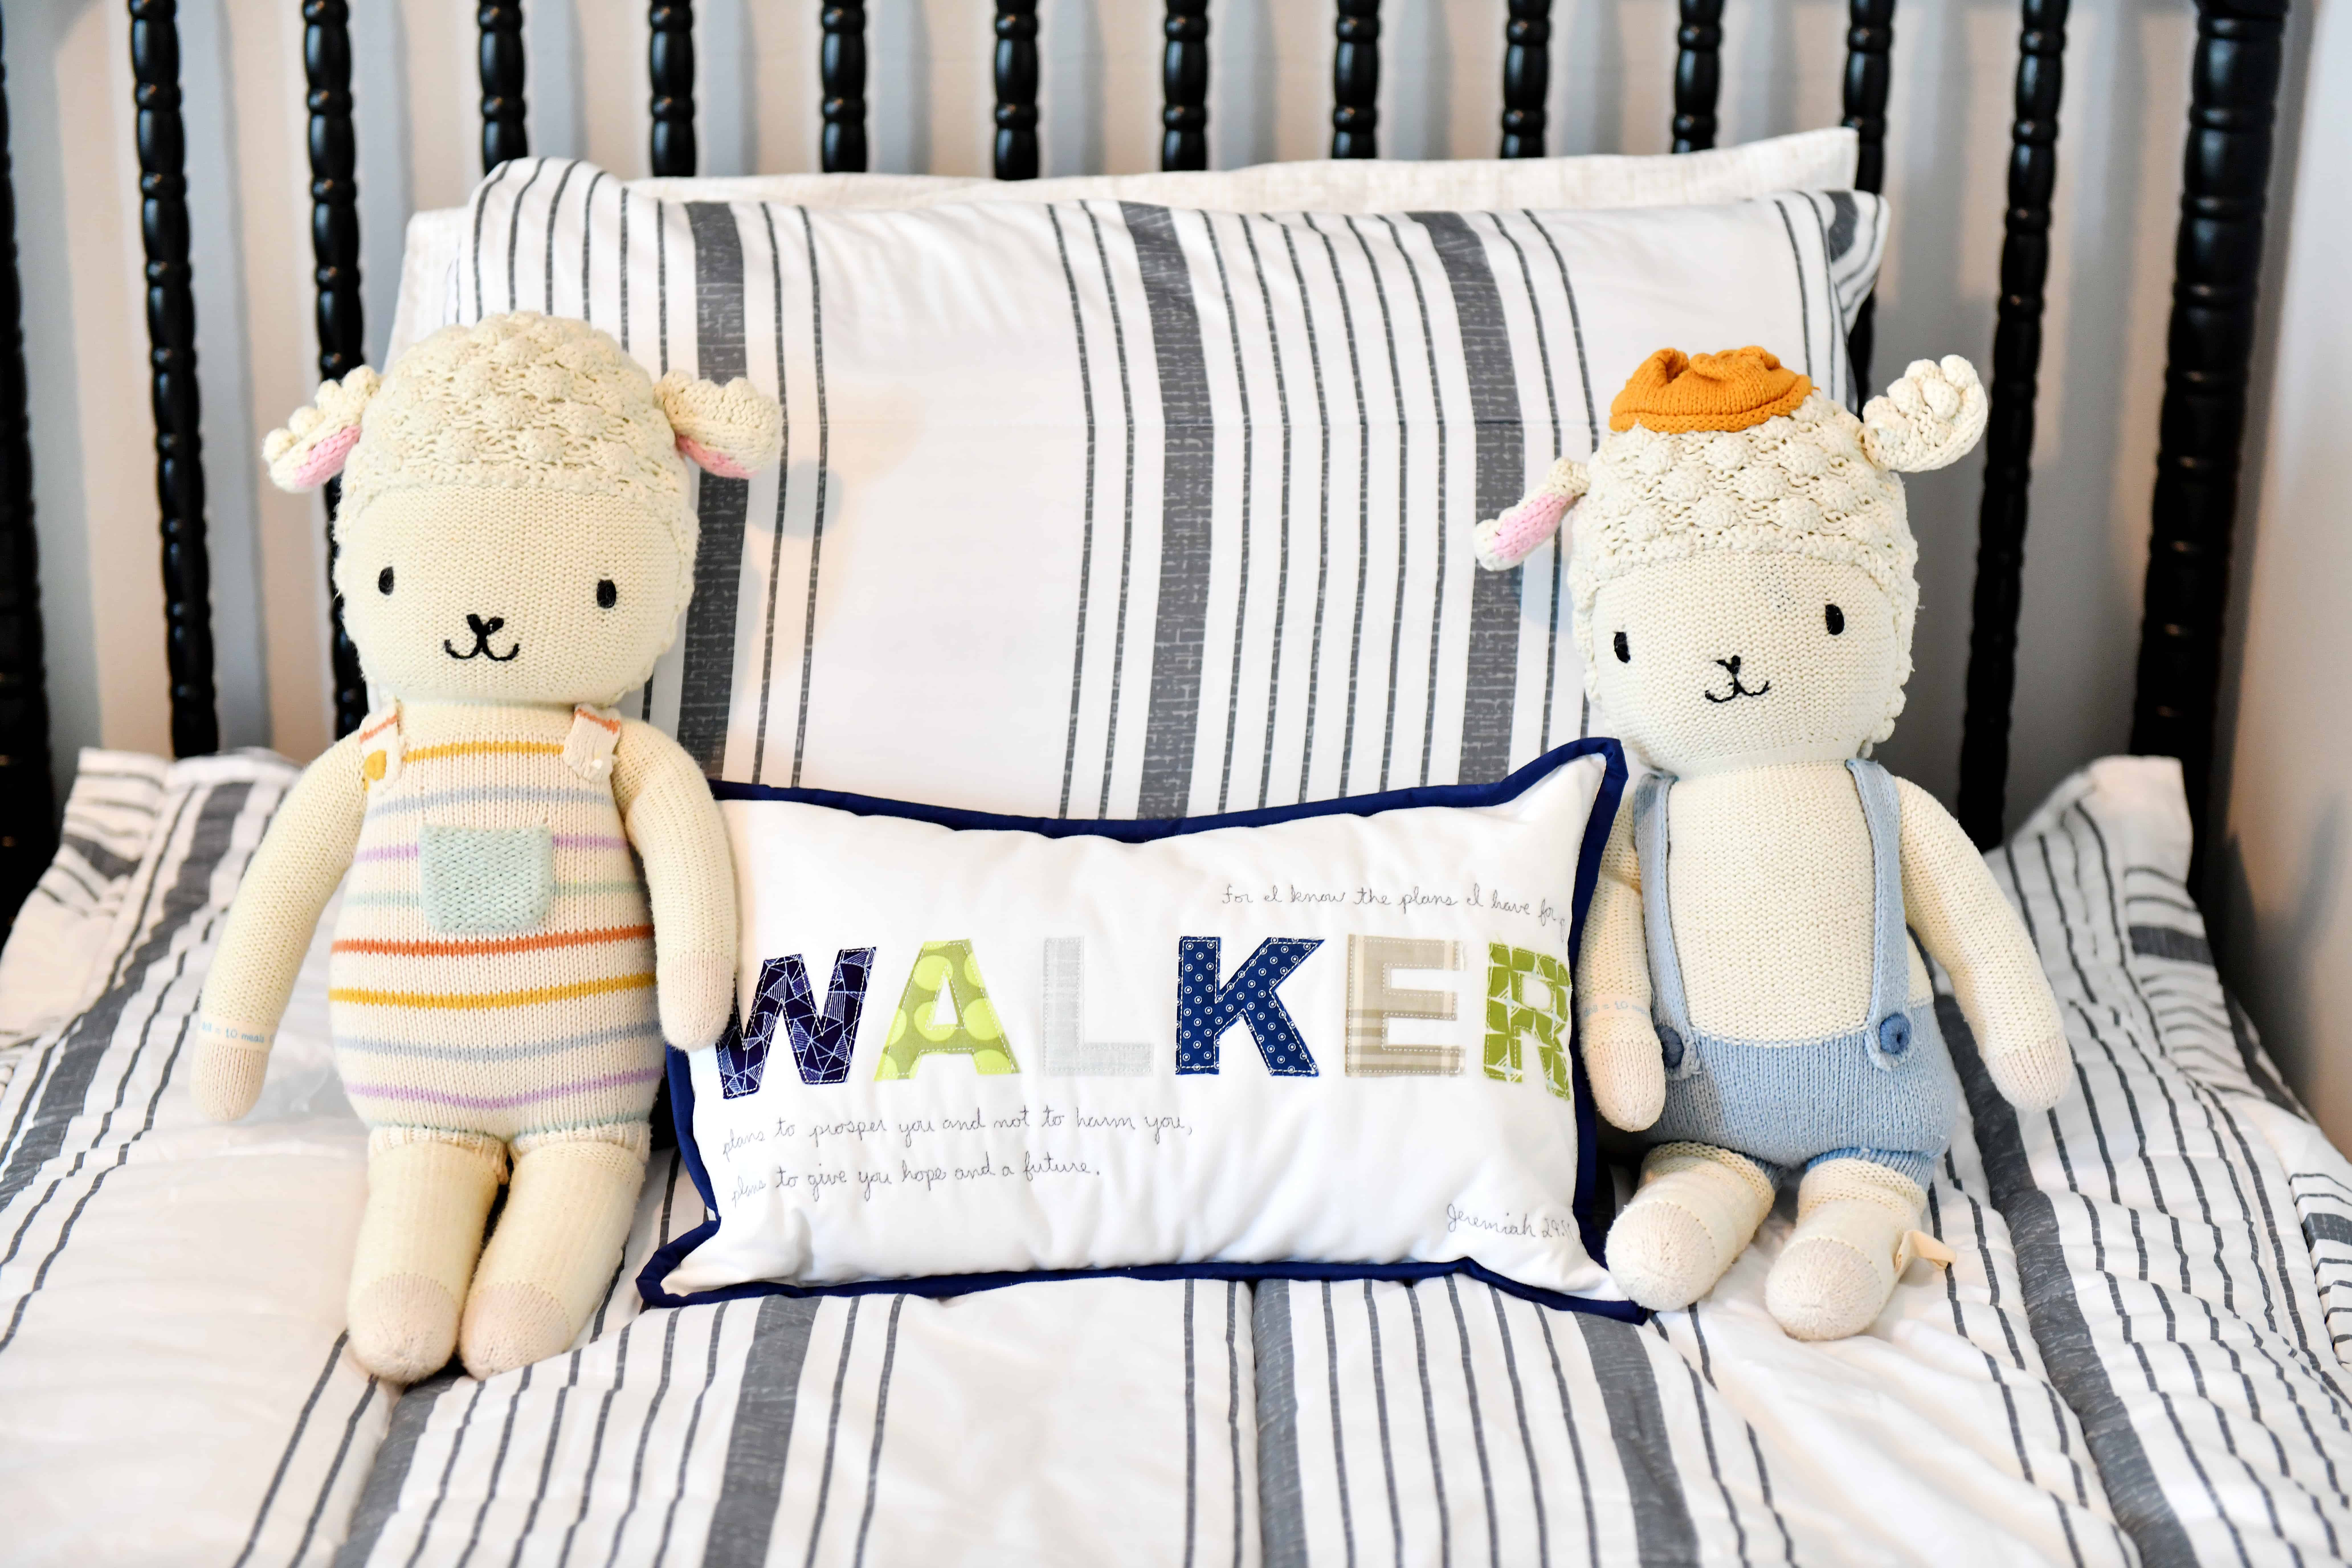 Walker pillow with cuddle and kind dolls